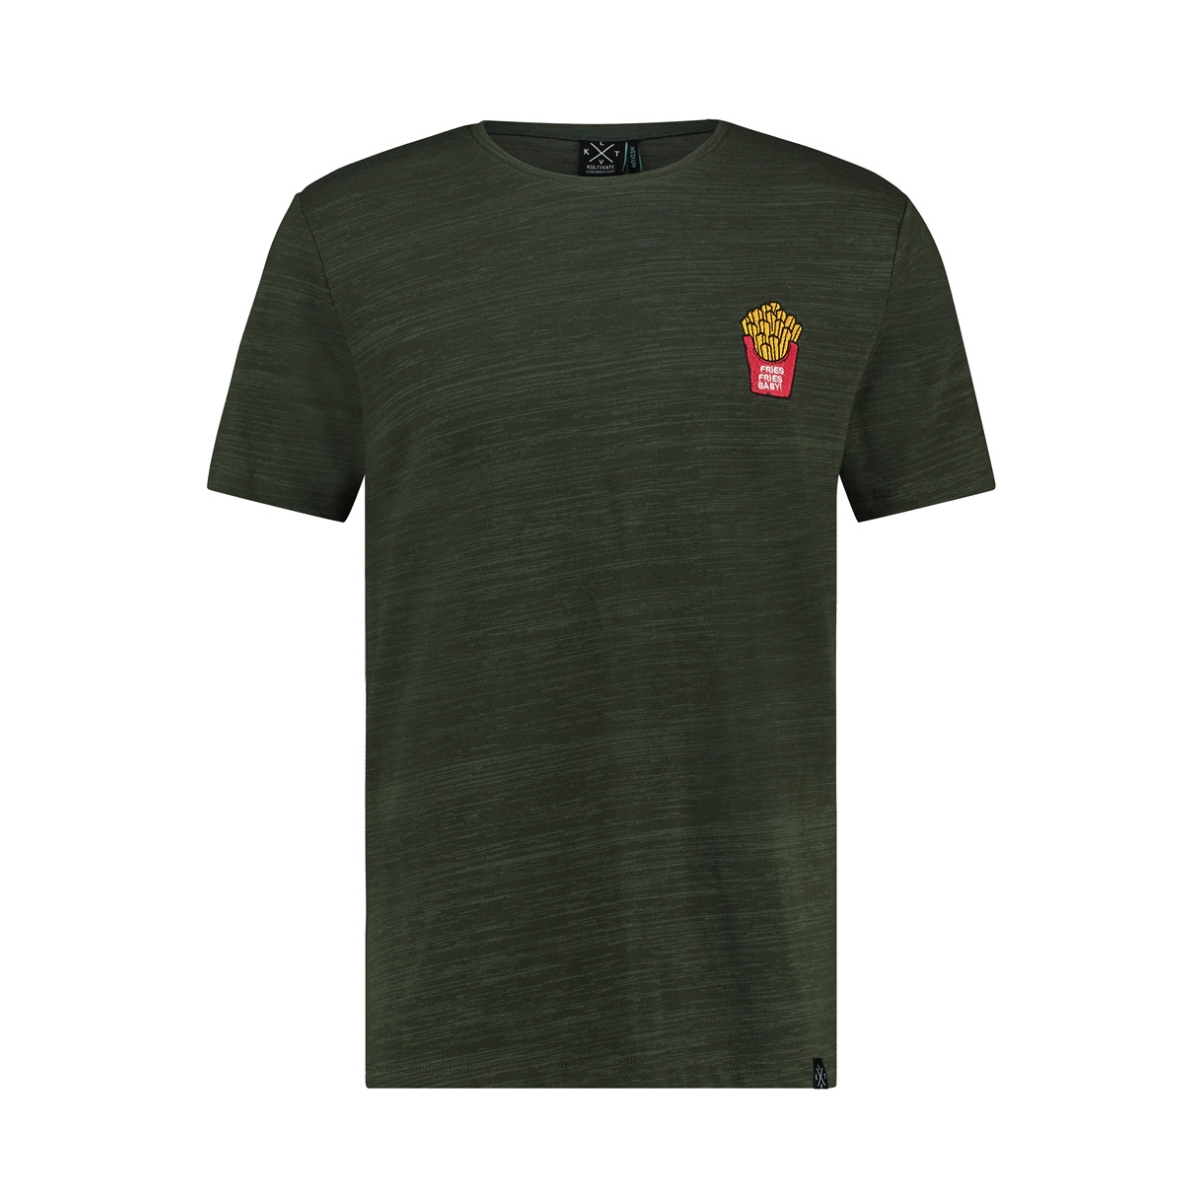 ts fries baby 1901030224 kultivate t-shirt 385 deep forest